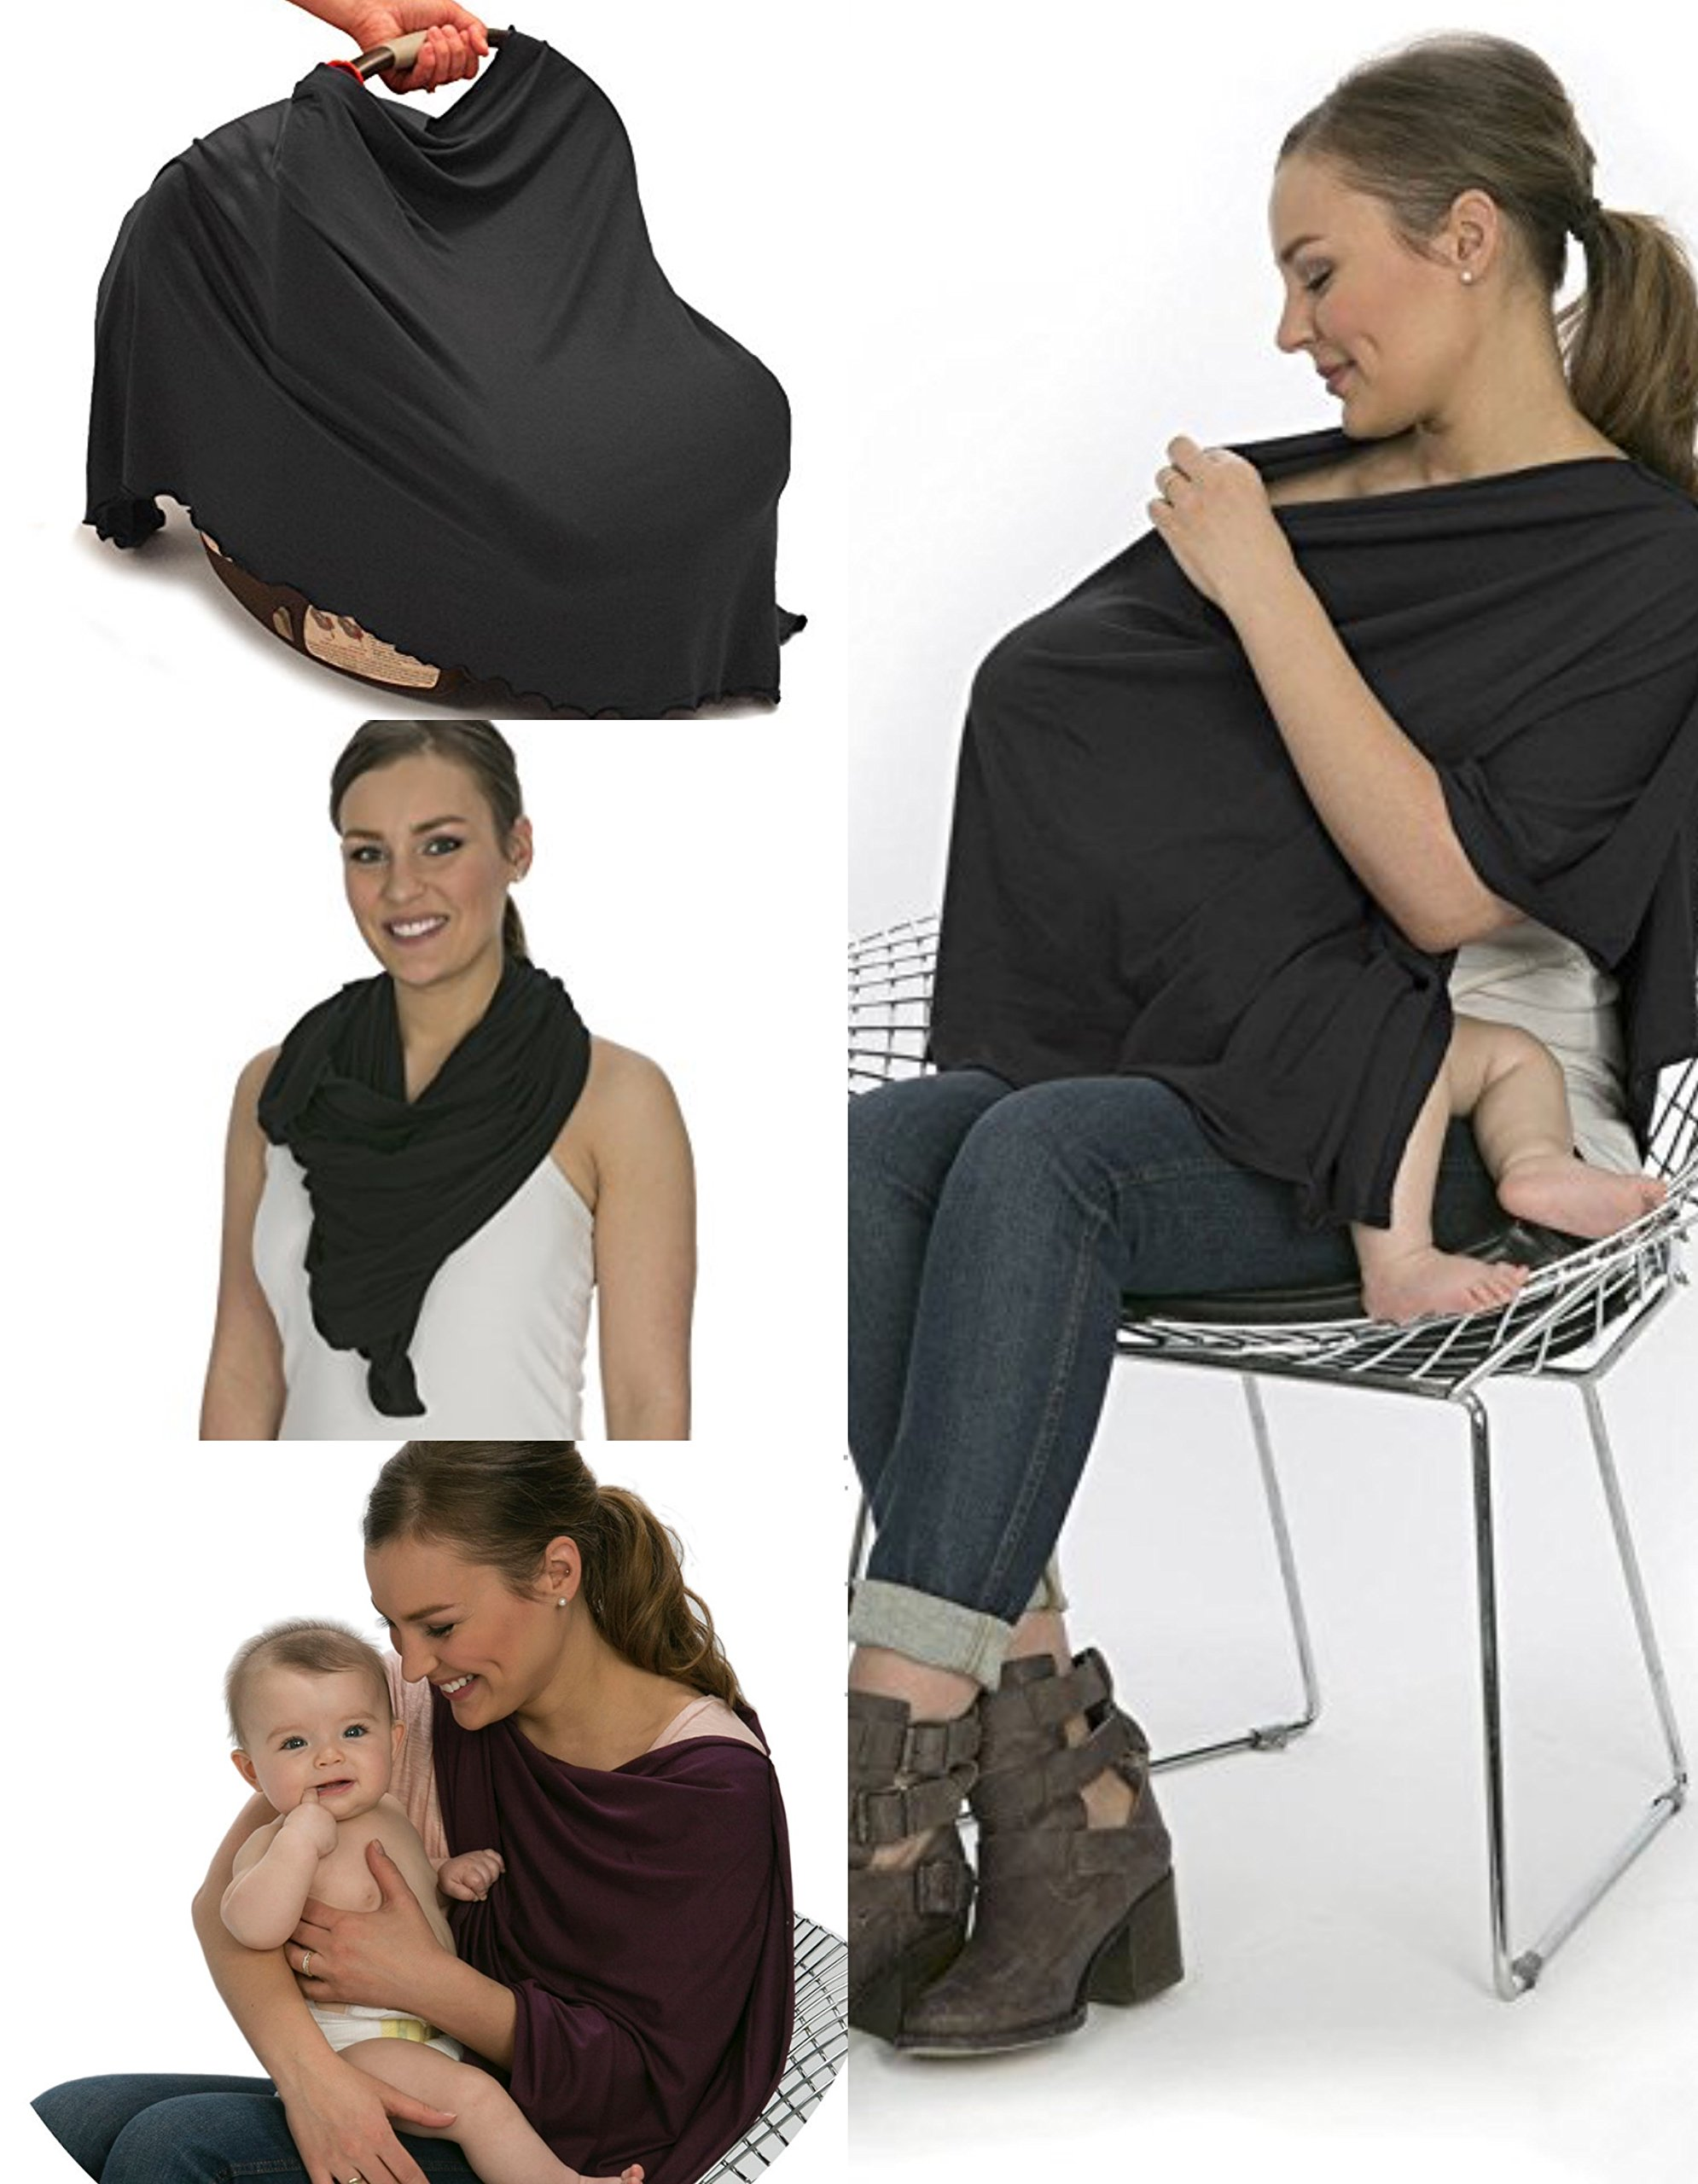 bamboobies Nursing Cover Shawl Scarf Maternity Poncho Top for Breastfeeding and Baby Car Seat Cover, Black